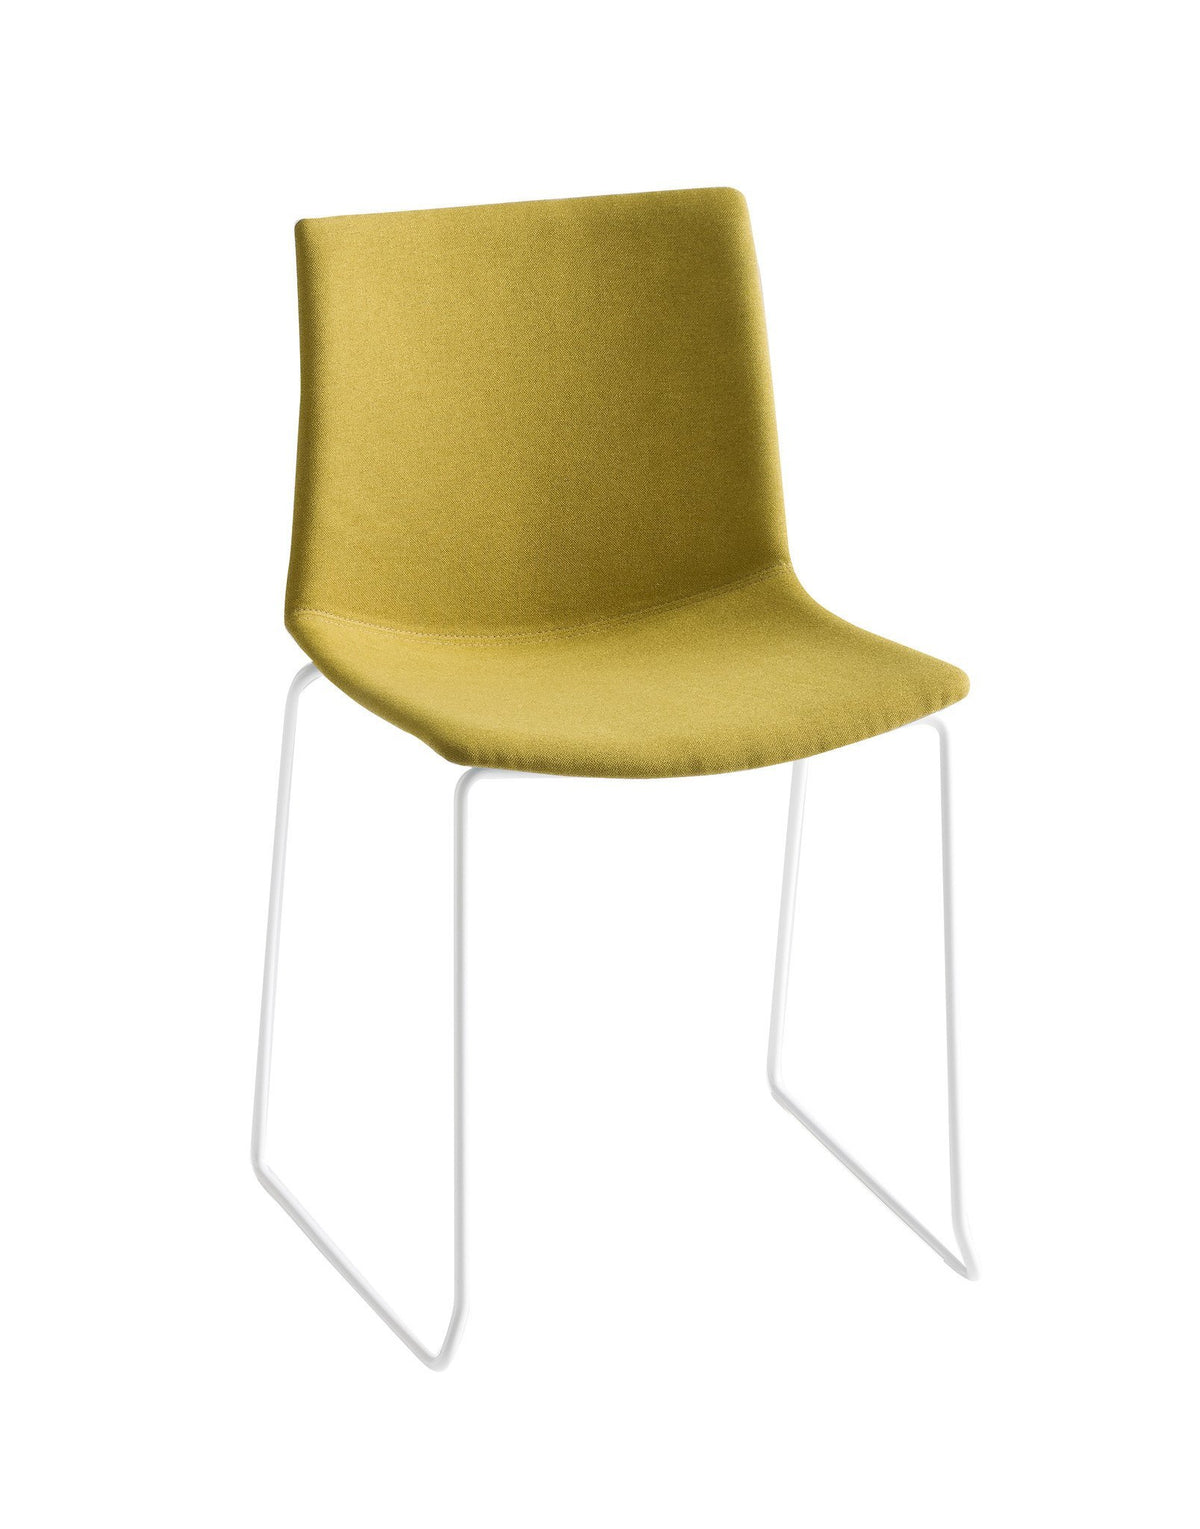 Kanvas Front Side Chair c/w Sled Legs-Gaber-Contract Furniture Store